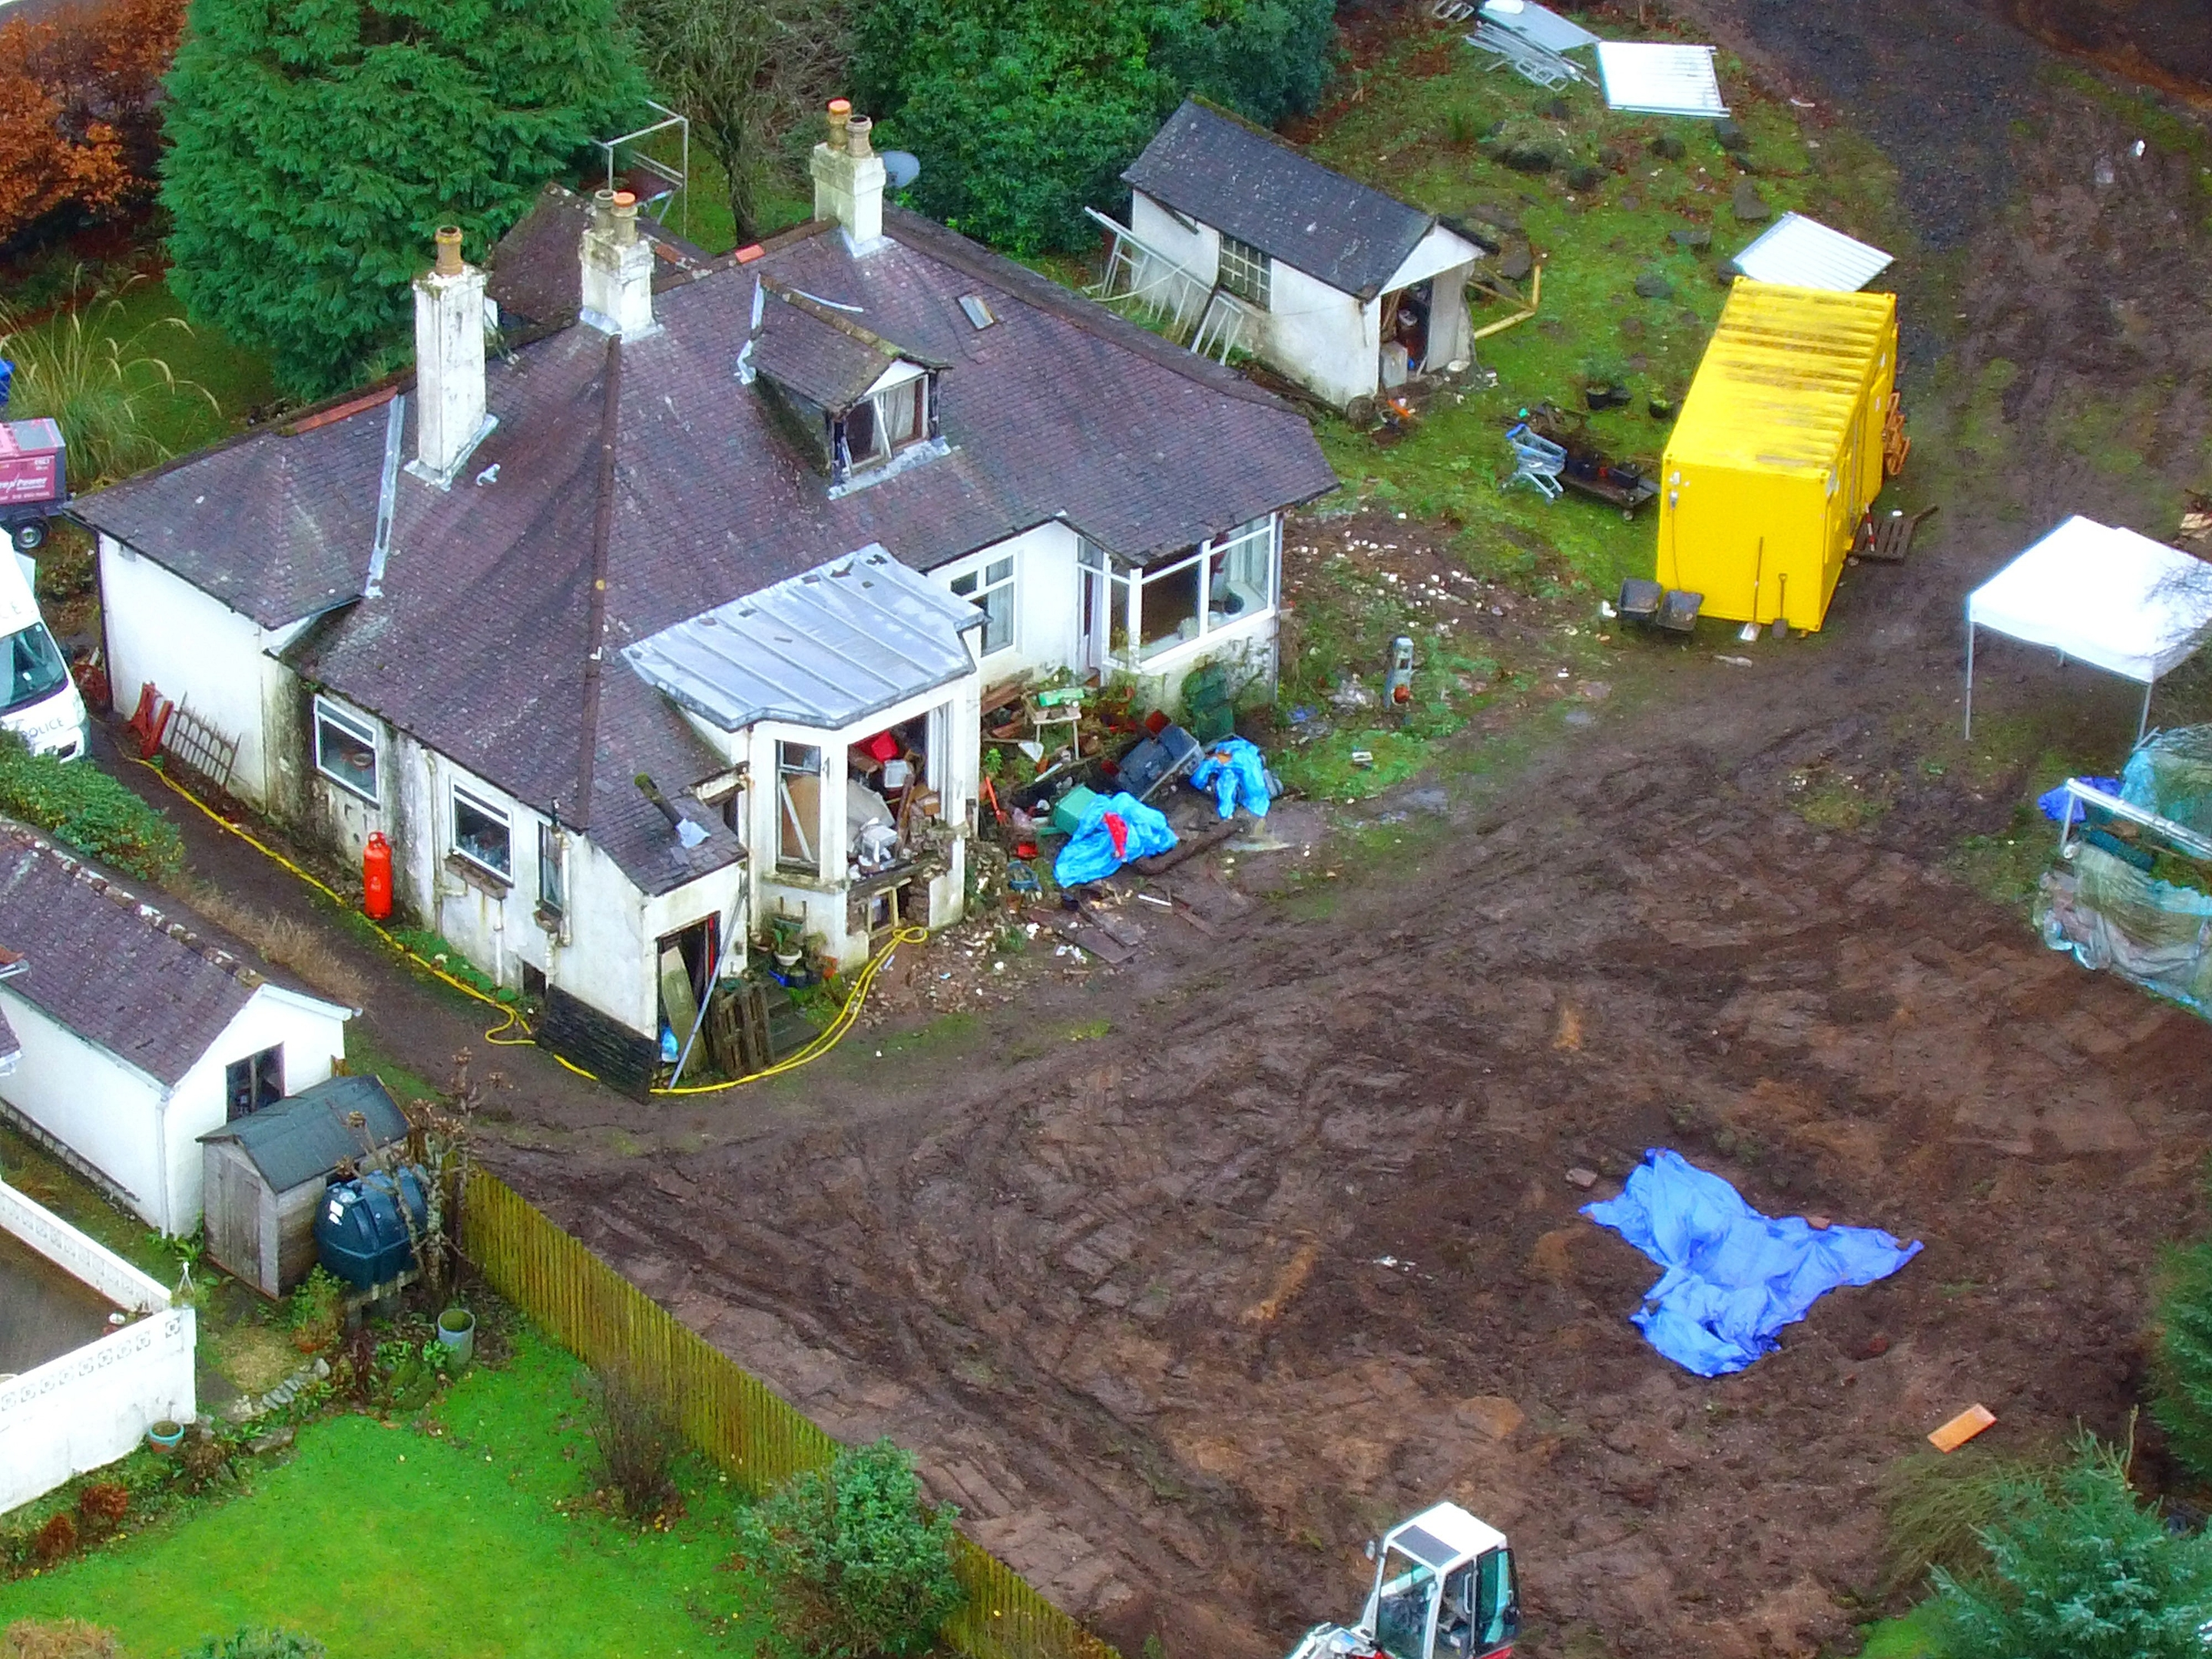 Aerial view of the police search at home of Margaret Fleming in Inverkip, Inverclyde.